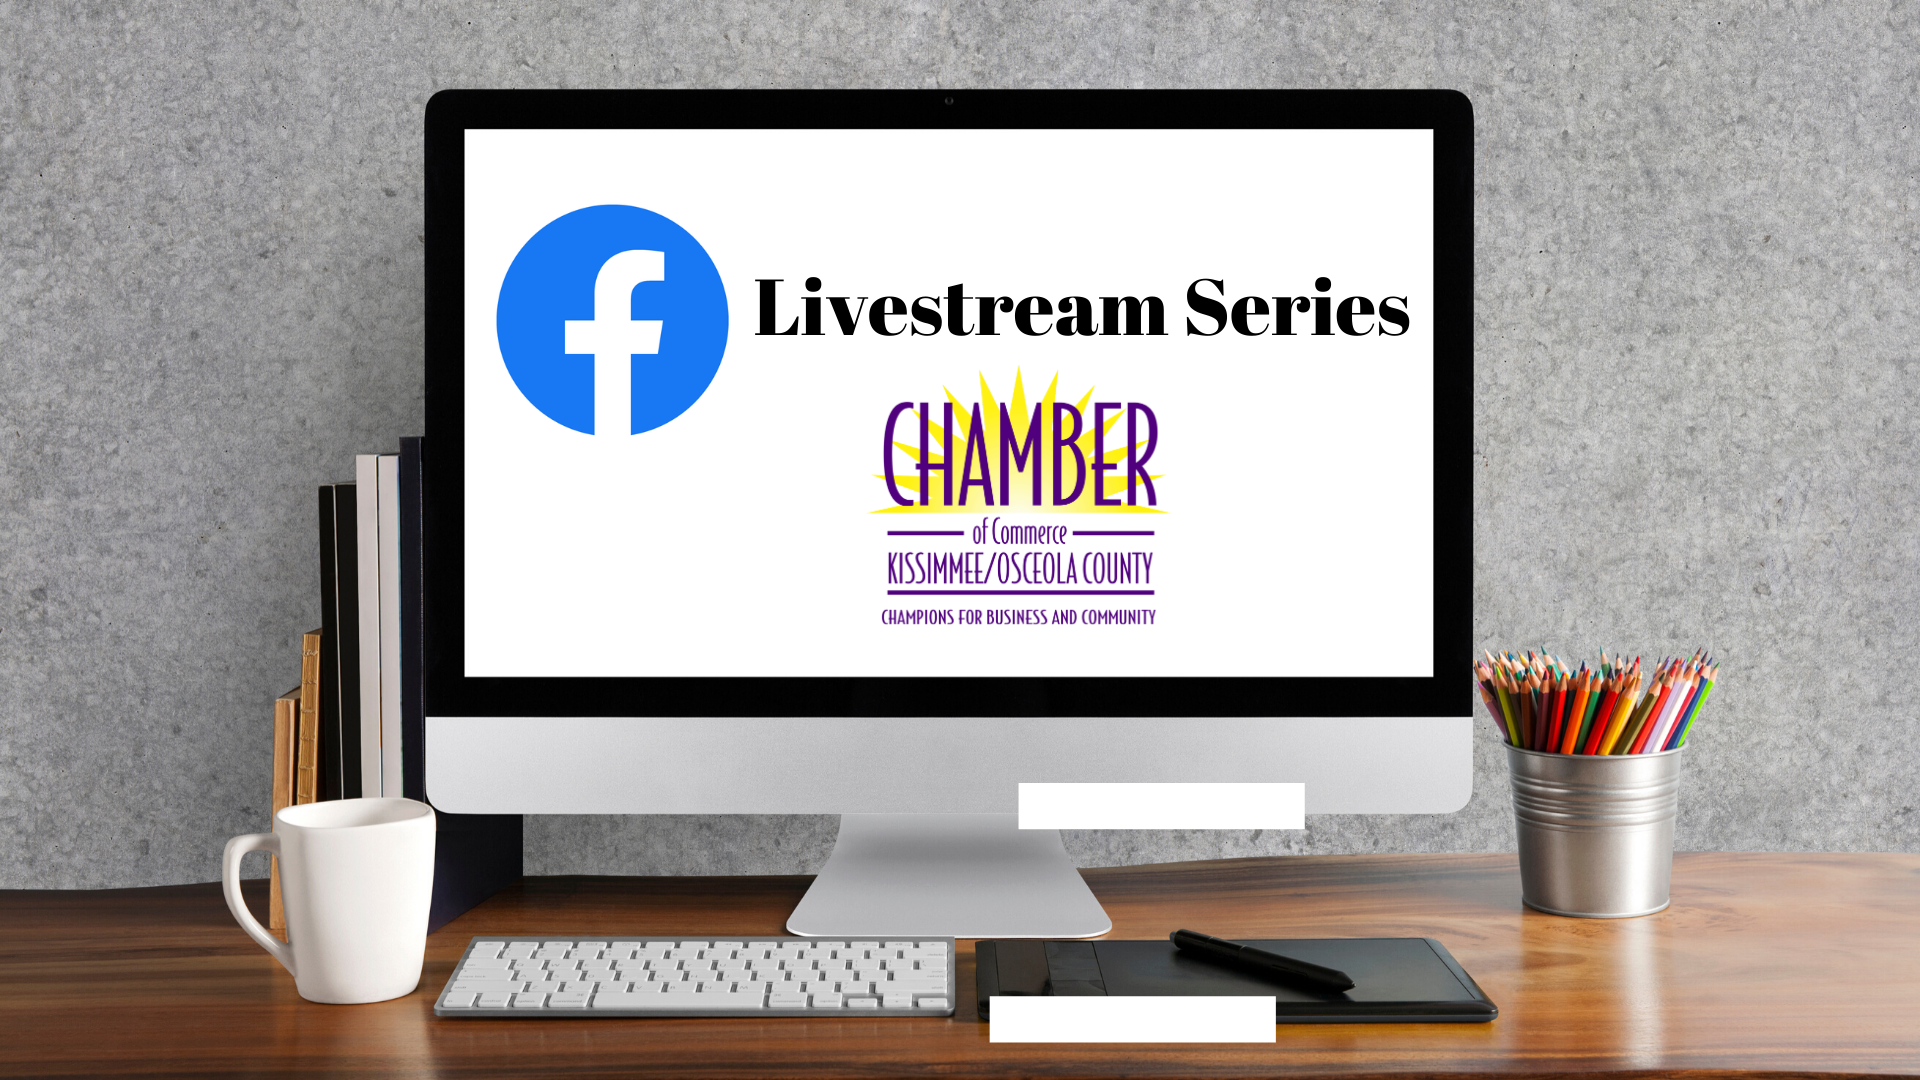 Kissimmee/Osceola County Chamber Hosts Livestream Info Series On Facebook